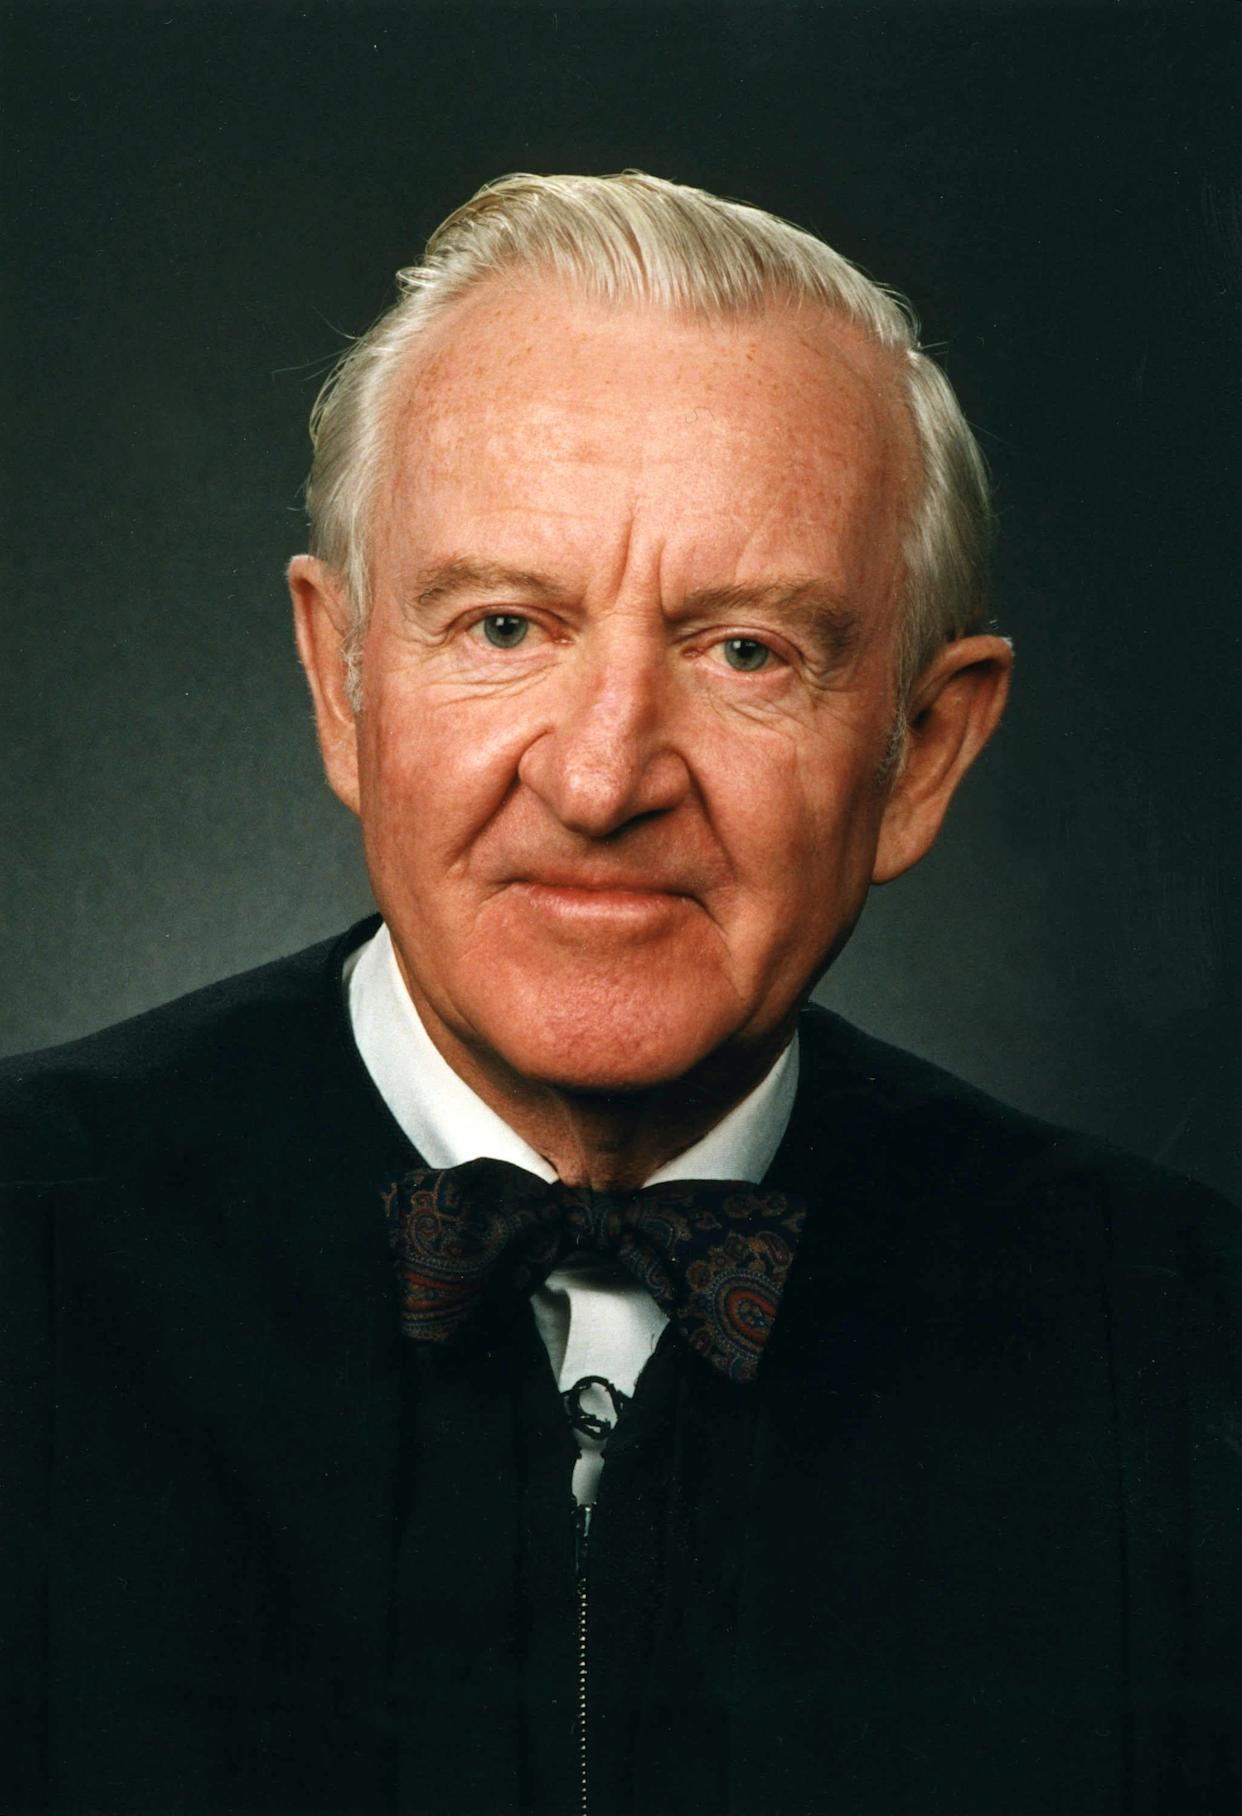 An official portrait of Justice John Paul Stevens in his judicialrobes and trademark bowtie.